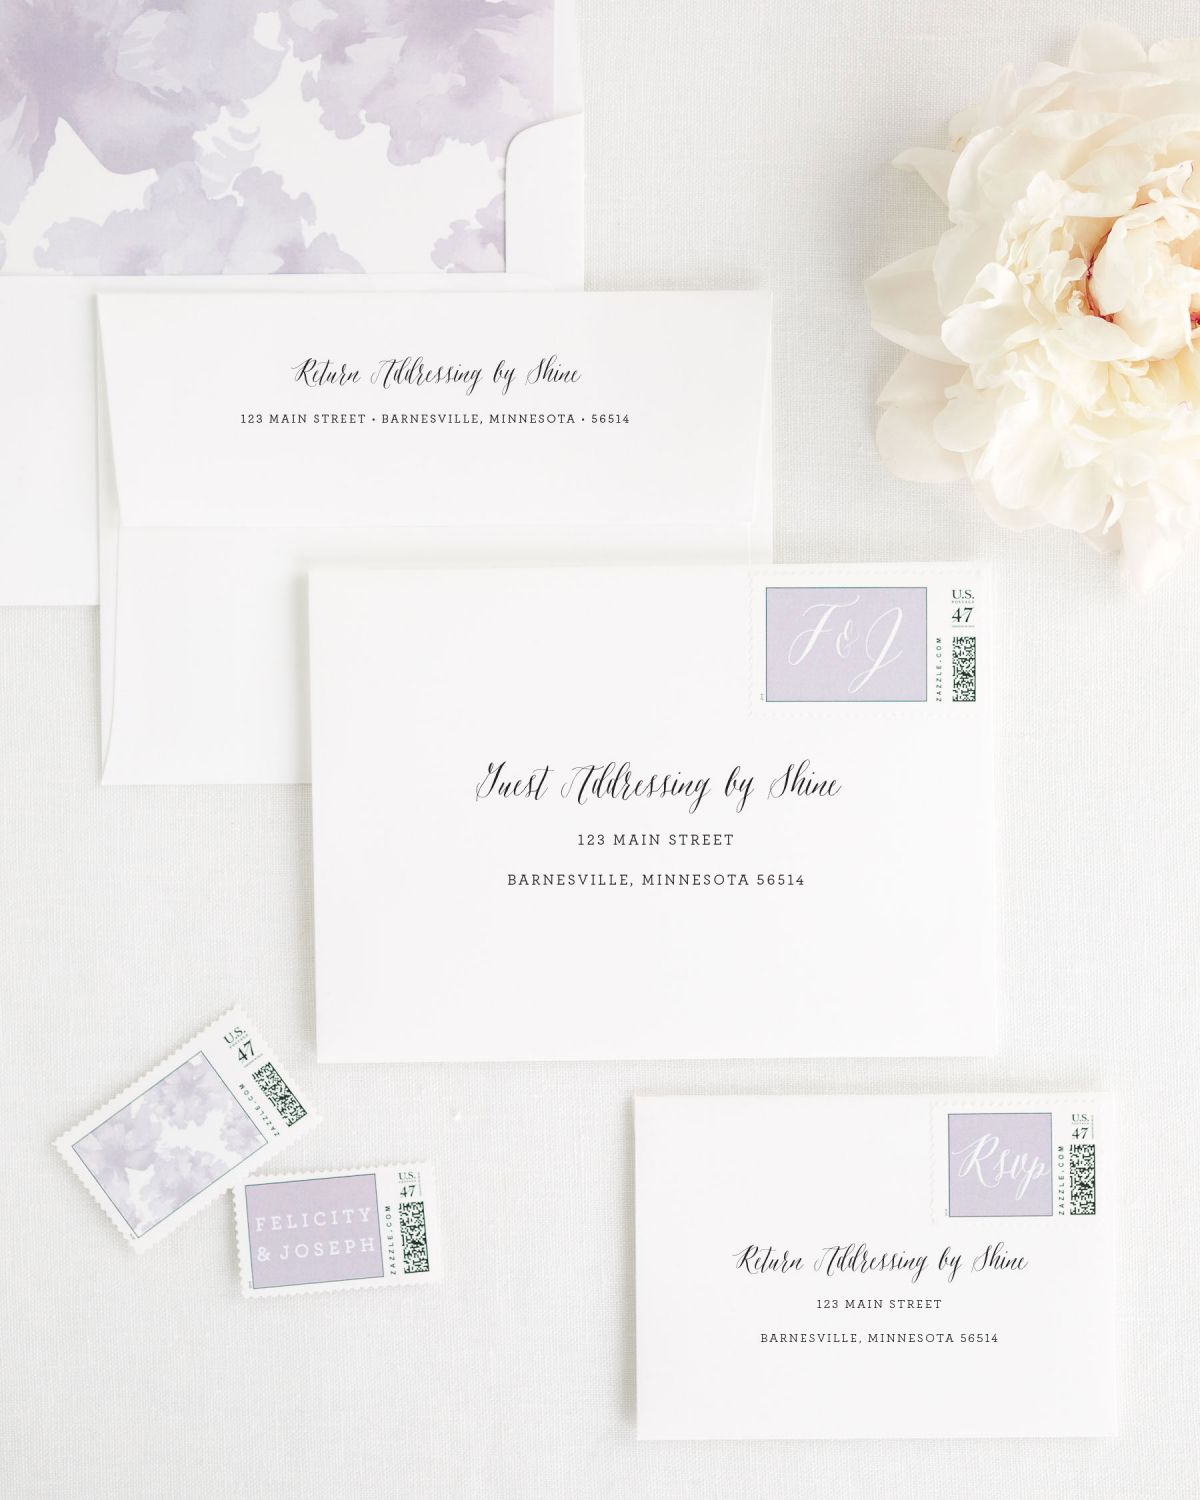 Wedding Invitation Envelopes with Address Printing and Matching Stamps